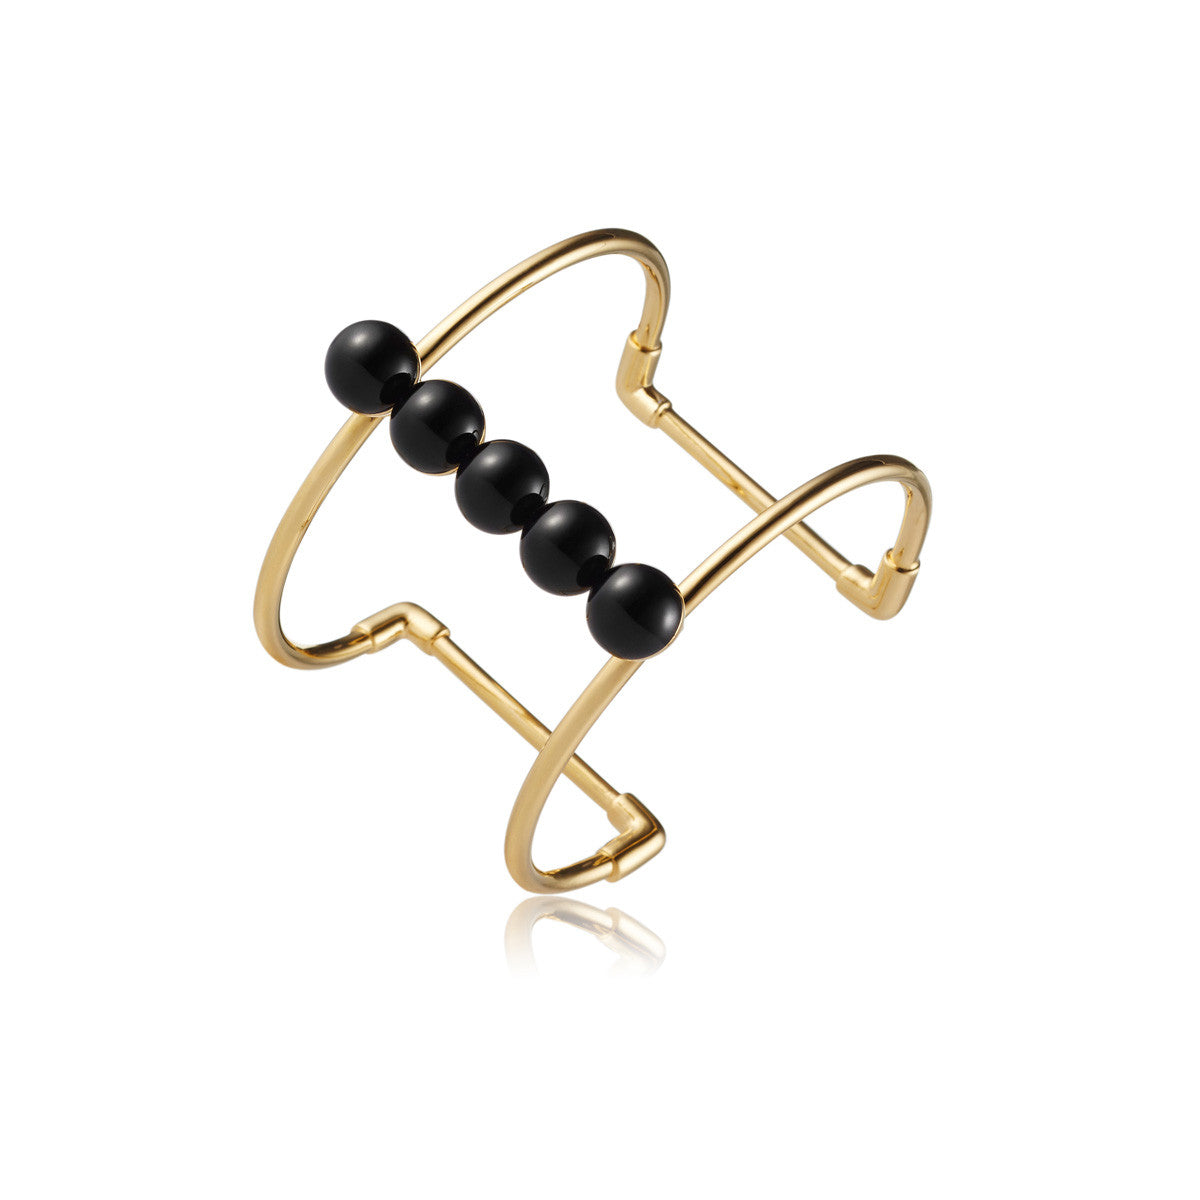 Solid brass, 18K gold plated Moonraker cuff bangle features a bold line of natural black onyx spheres along the centre - side